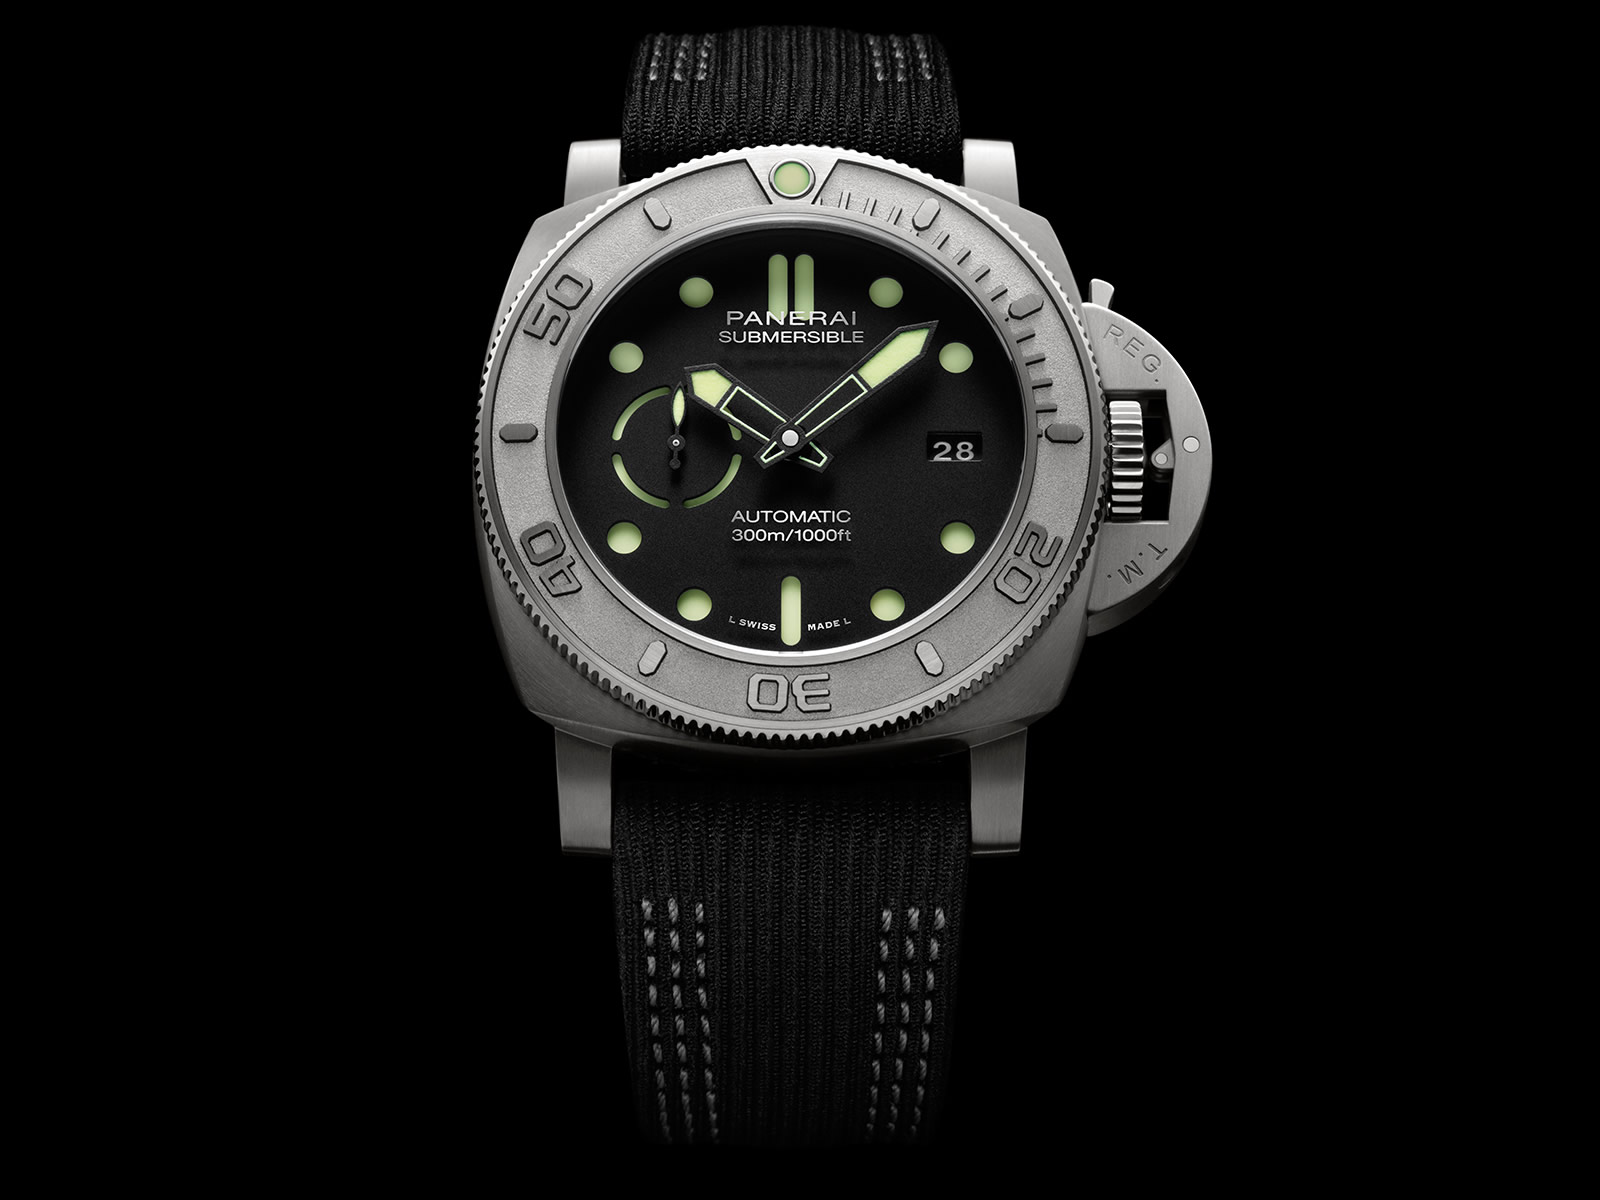 pam00984-officine-panerai-submersible-mike-horn-edition-47mm-2-.jpg